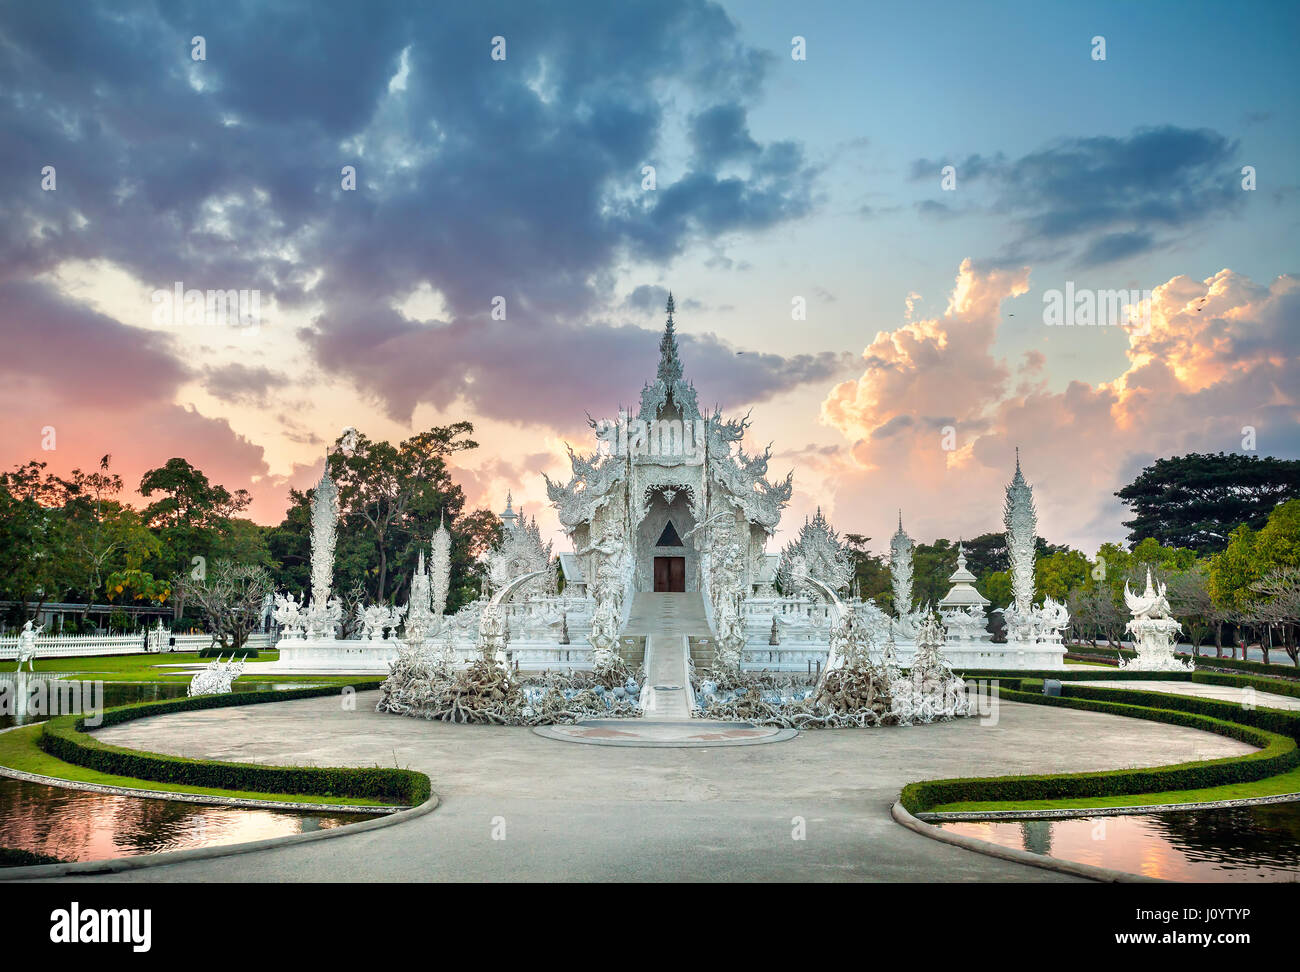 Wat Rong Khun The White Temple and pond at dramatic sunset background in Chiang Rai, Thailand - Stock Image